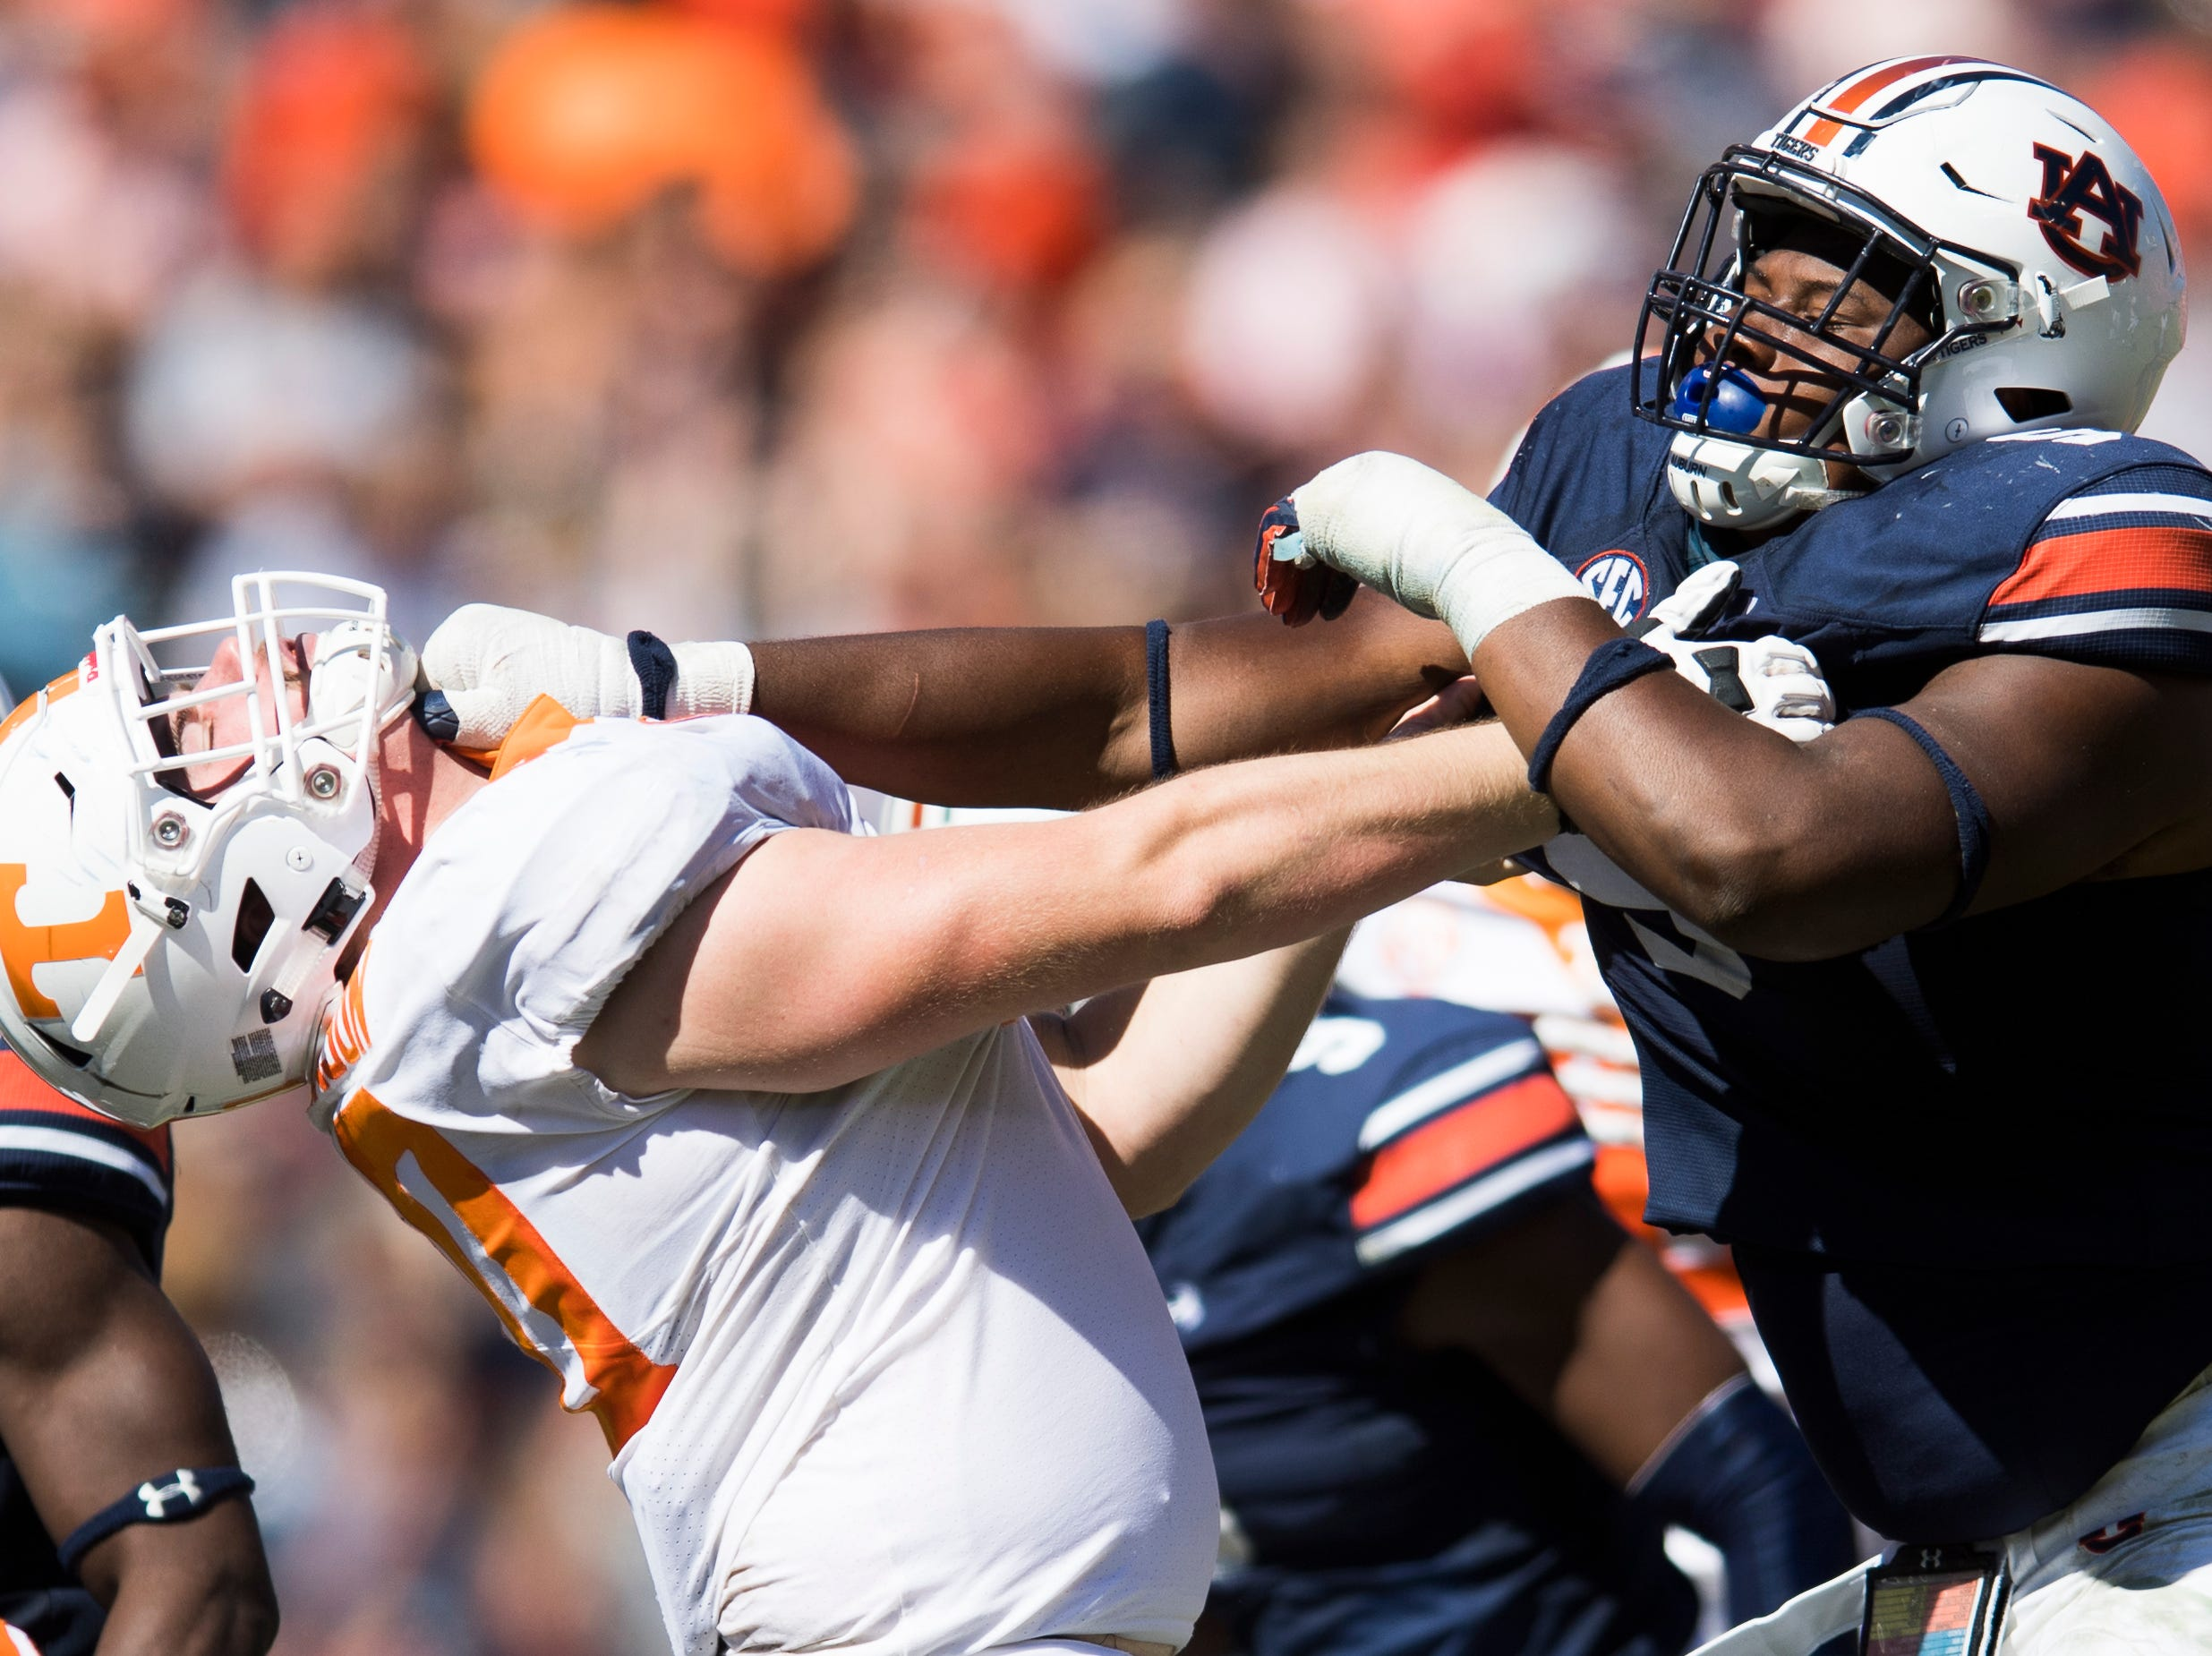 Auburn defensive lineman Derrick Brown (5) gives Tennessee offensive lineman Ryan Johnson (70) an aggressive push during a game between Tennessee and Auburn at Jordan-Hare Stadium in Auburn, Alabama on Saturday, October 13, 2018.